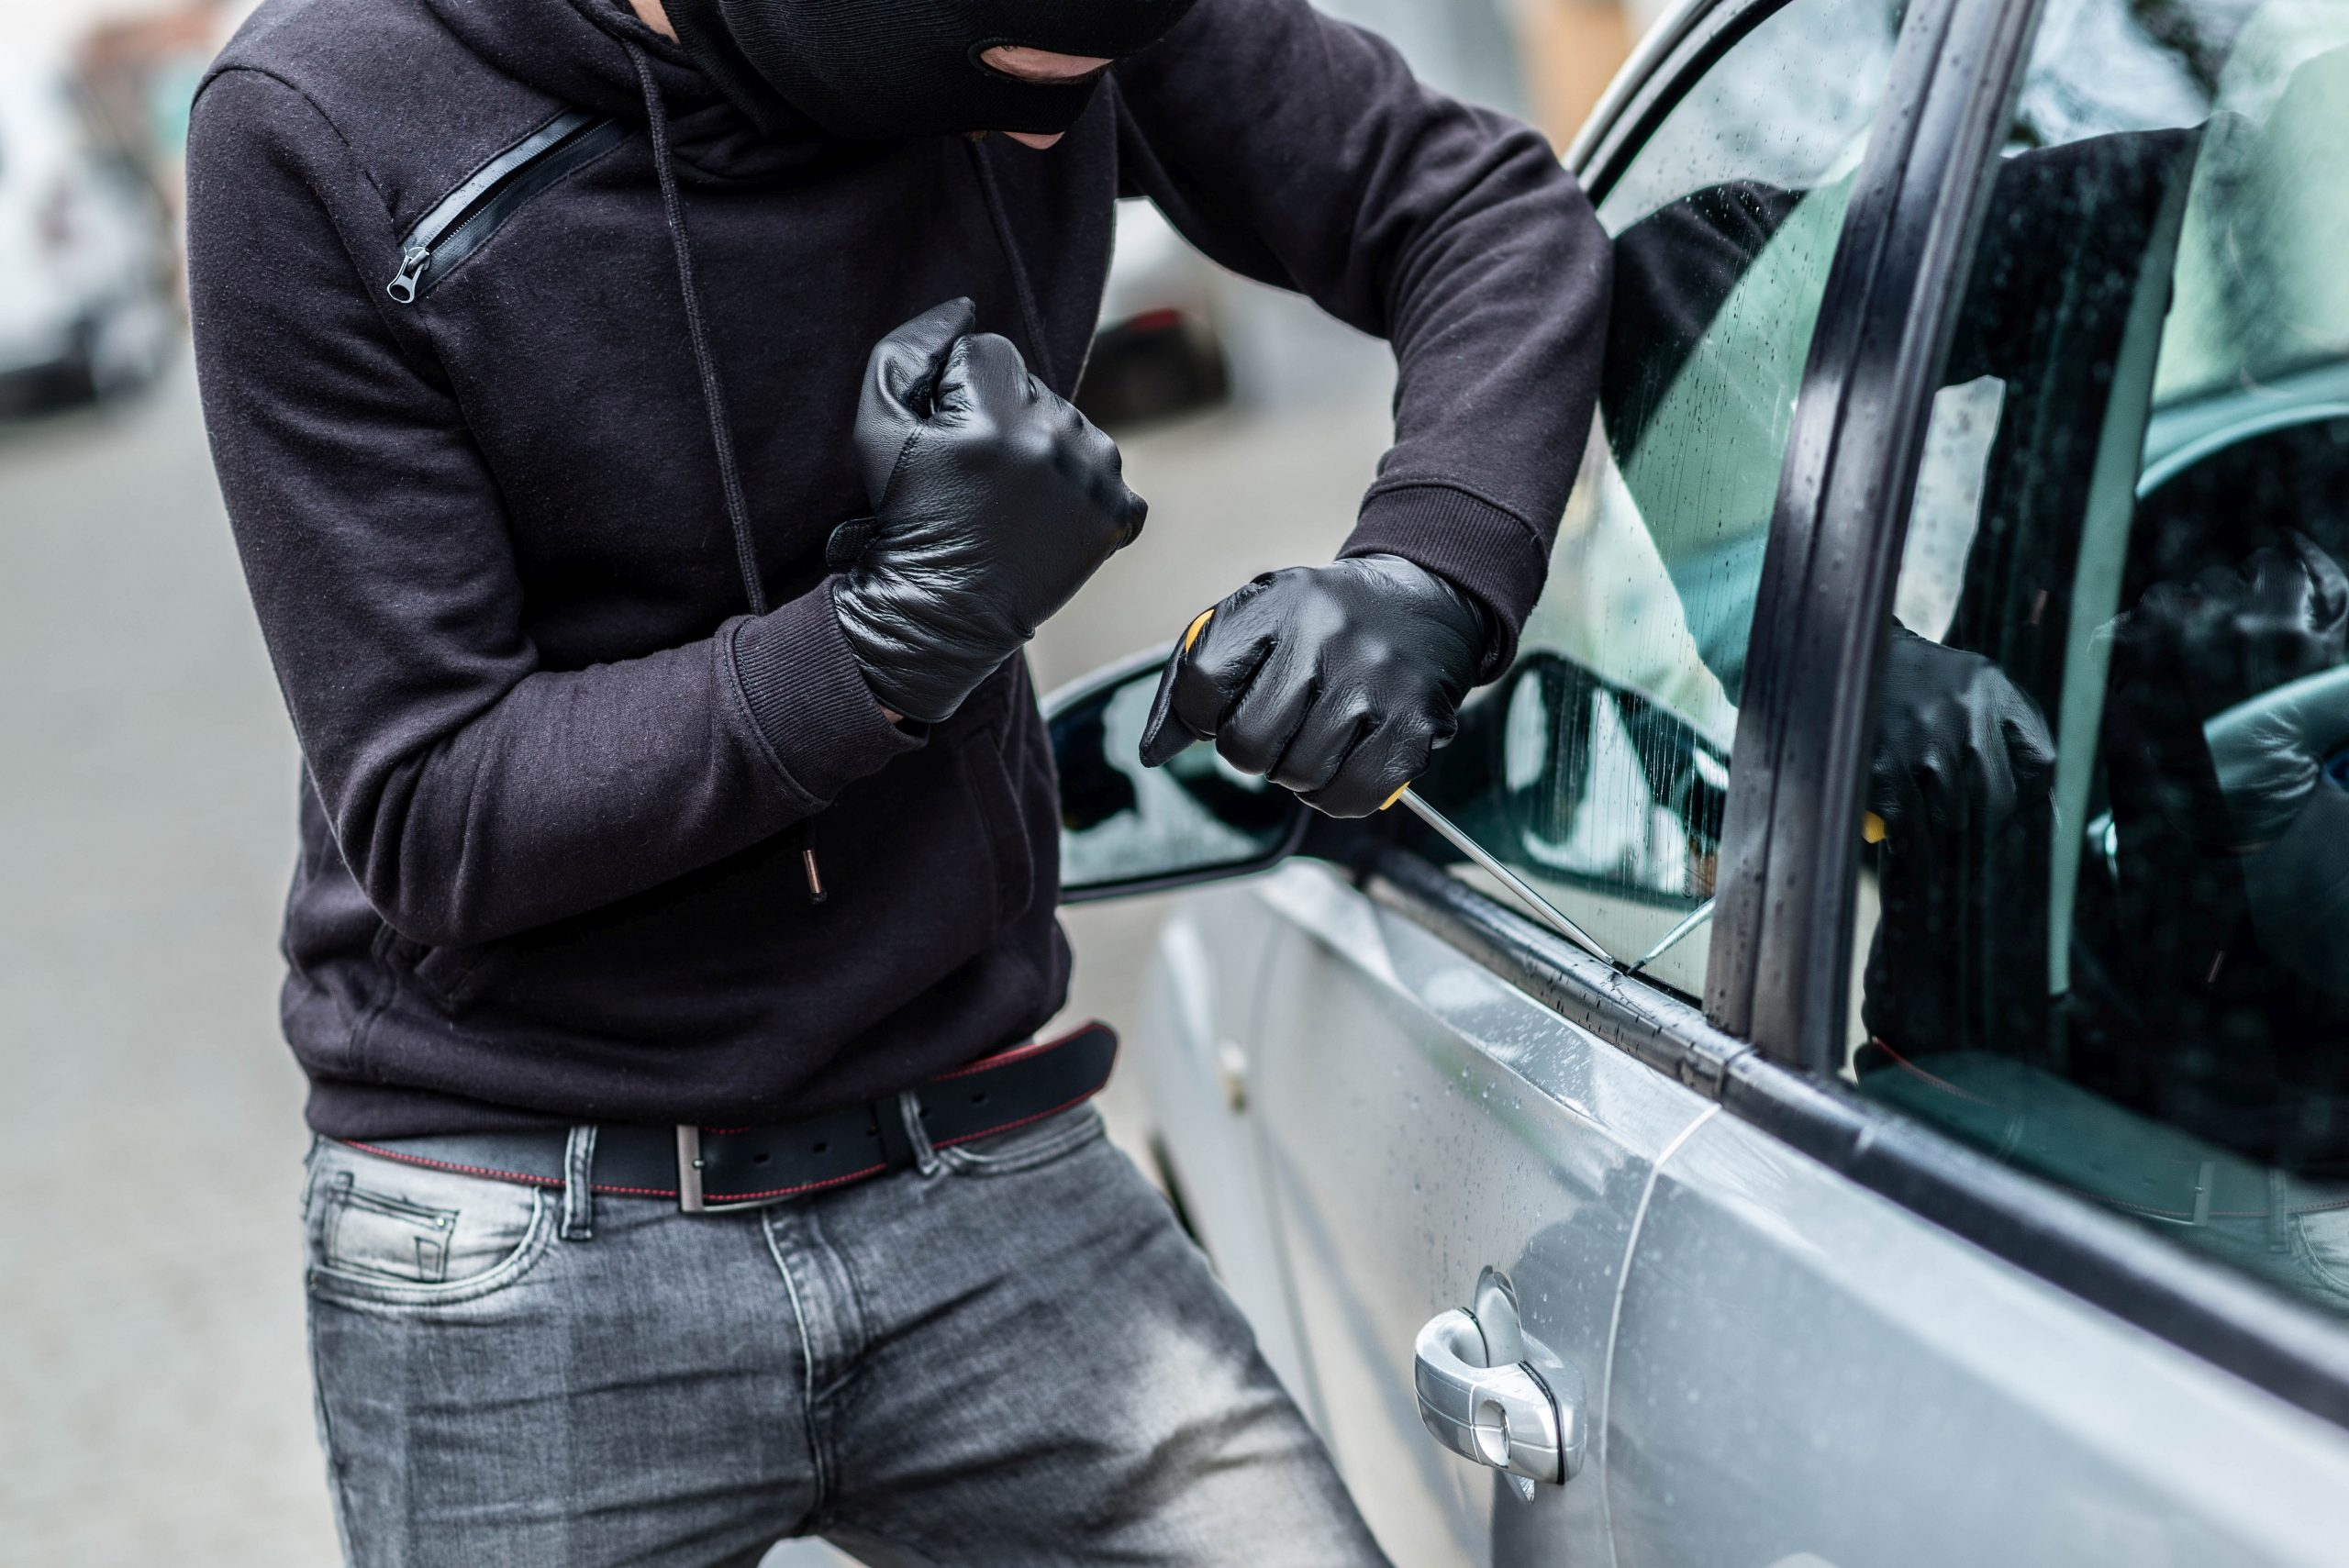 Must Have Vehicle Security Features